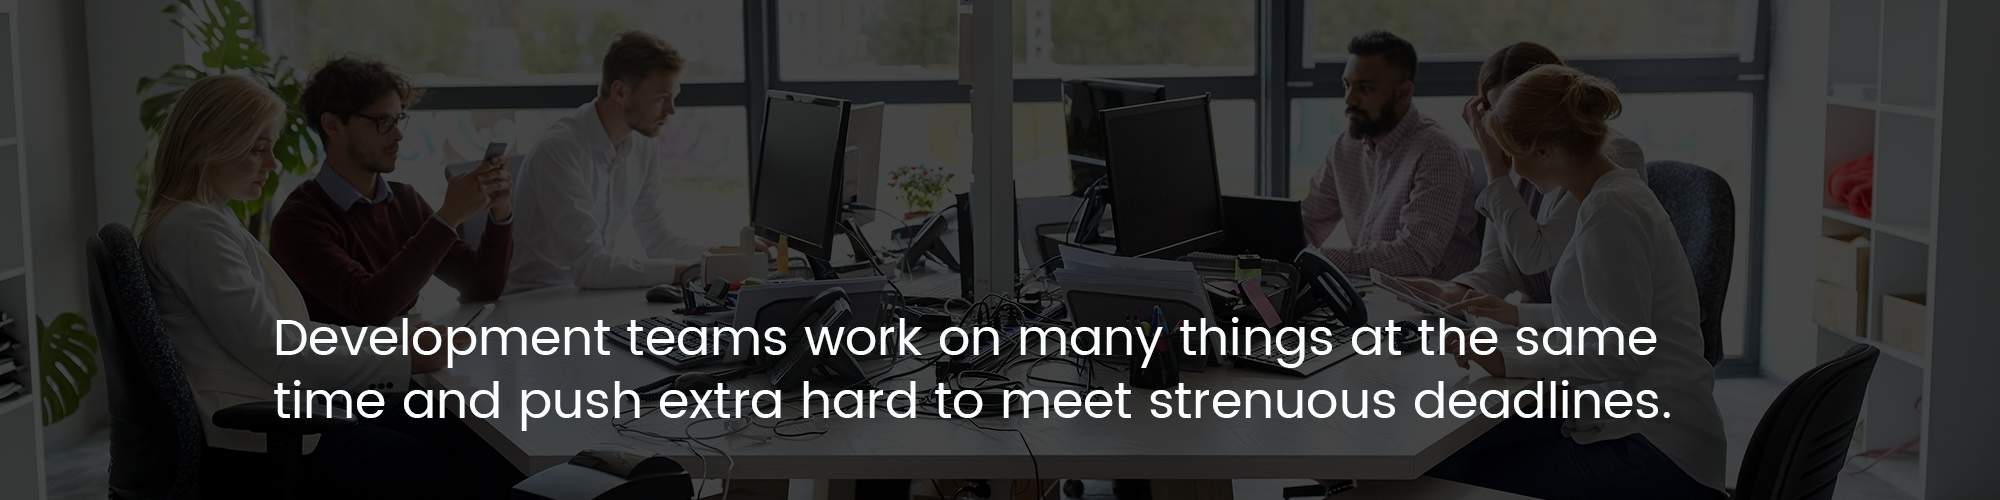 Development teams work on many things at the same time and push extra hard to meet strenuous deadlines.